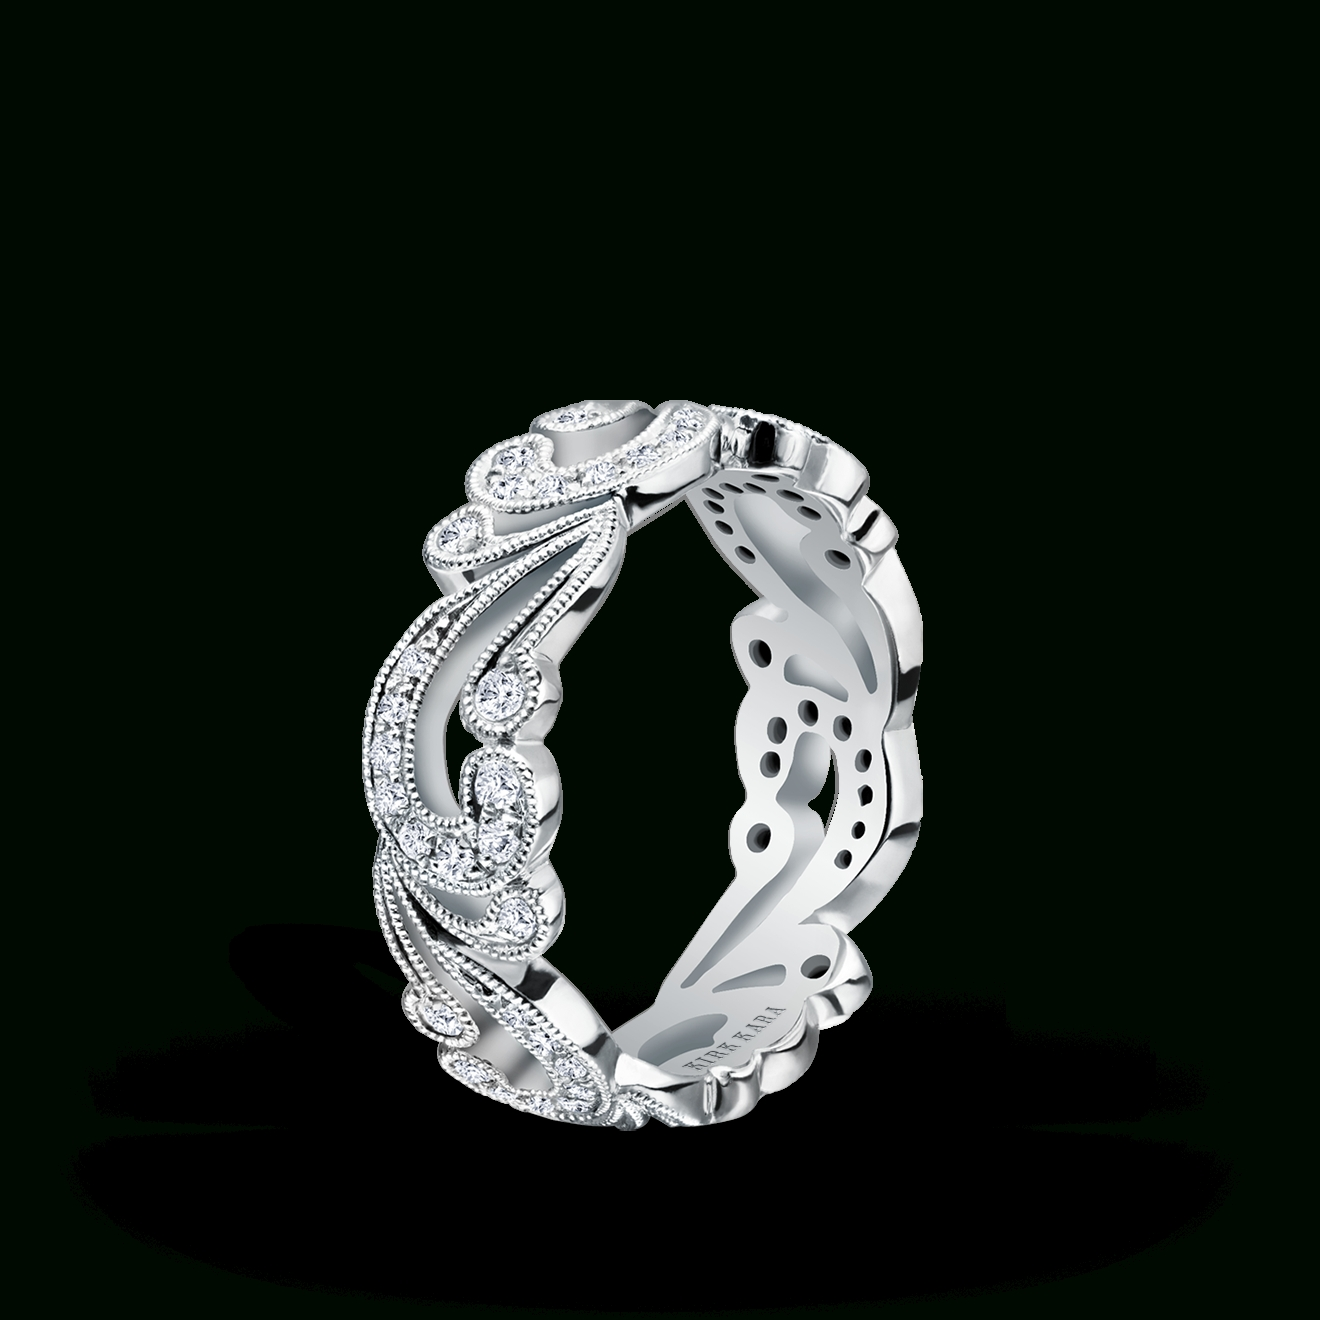 Designer Diamond Wedding & Anniversary Bands For Women | Kirk Kara Intended For Newest Anniversary Rings Designs (View 13 of 25)